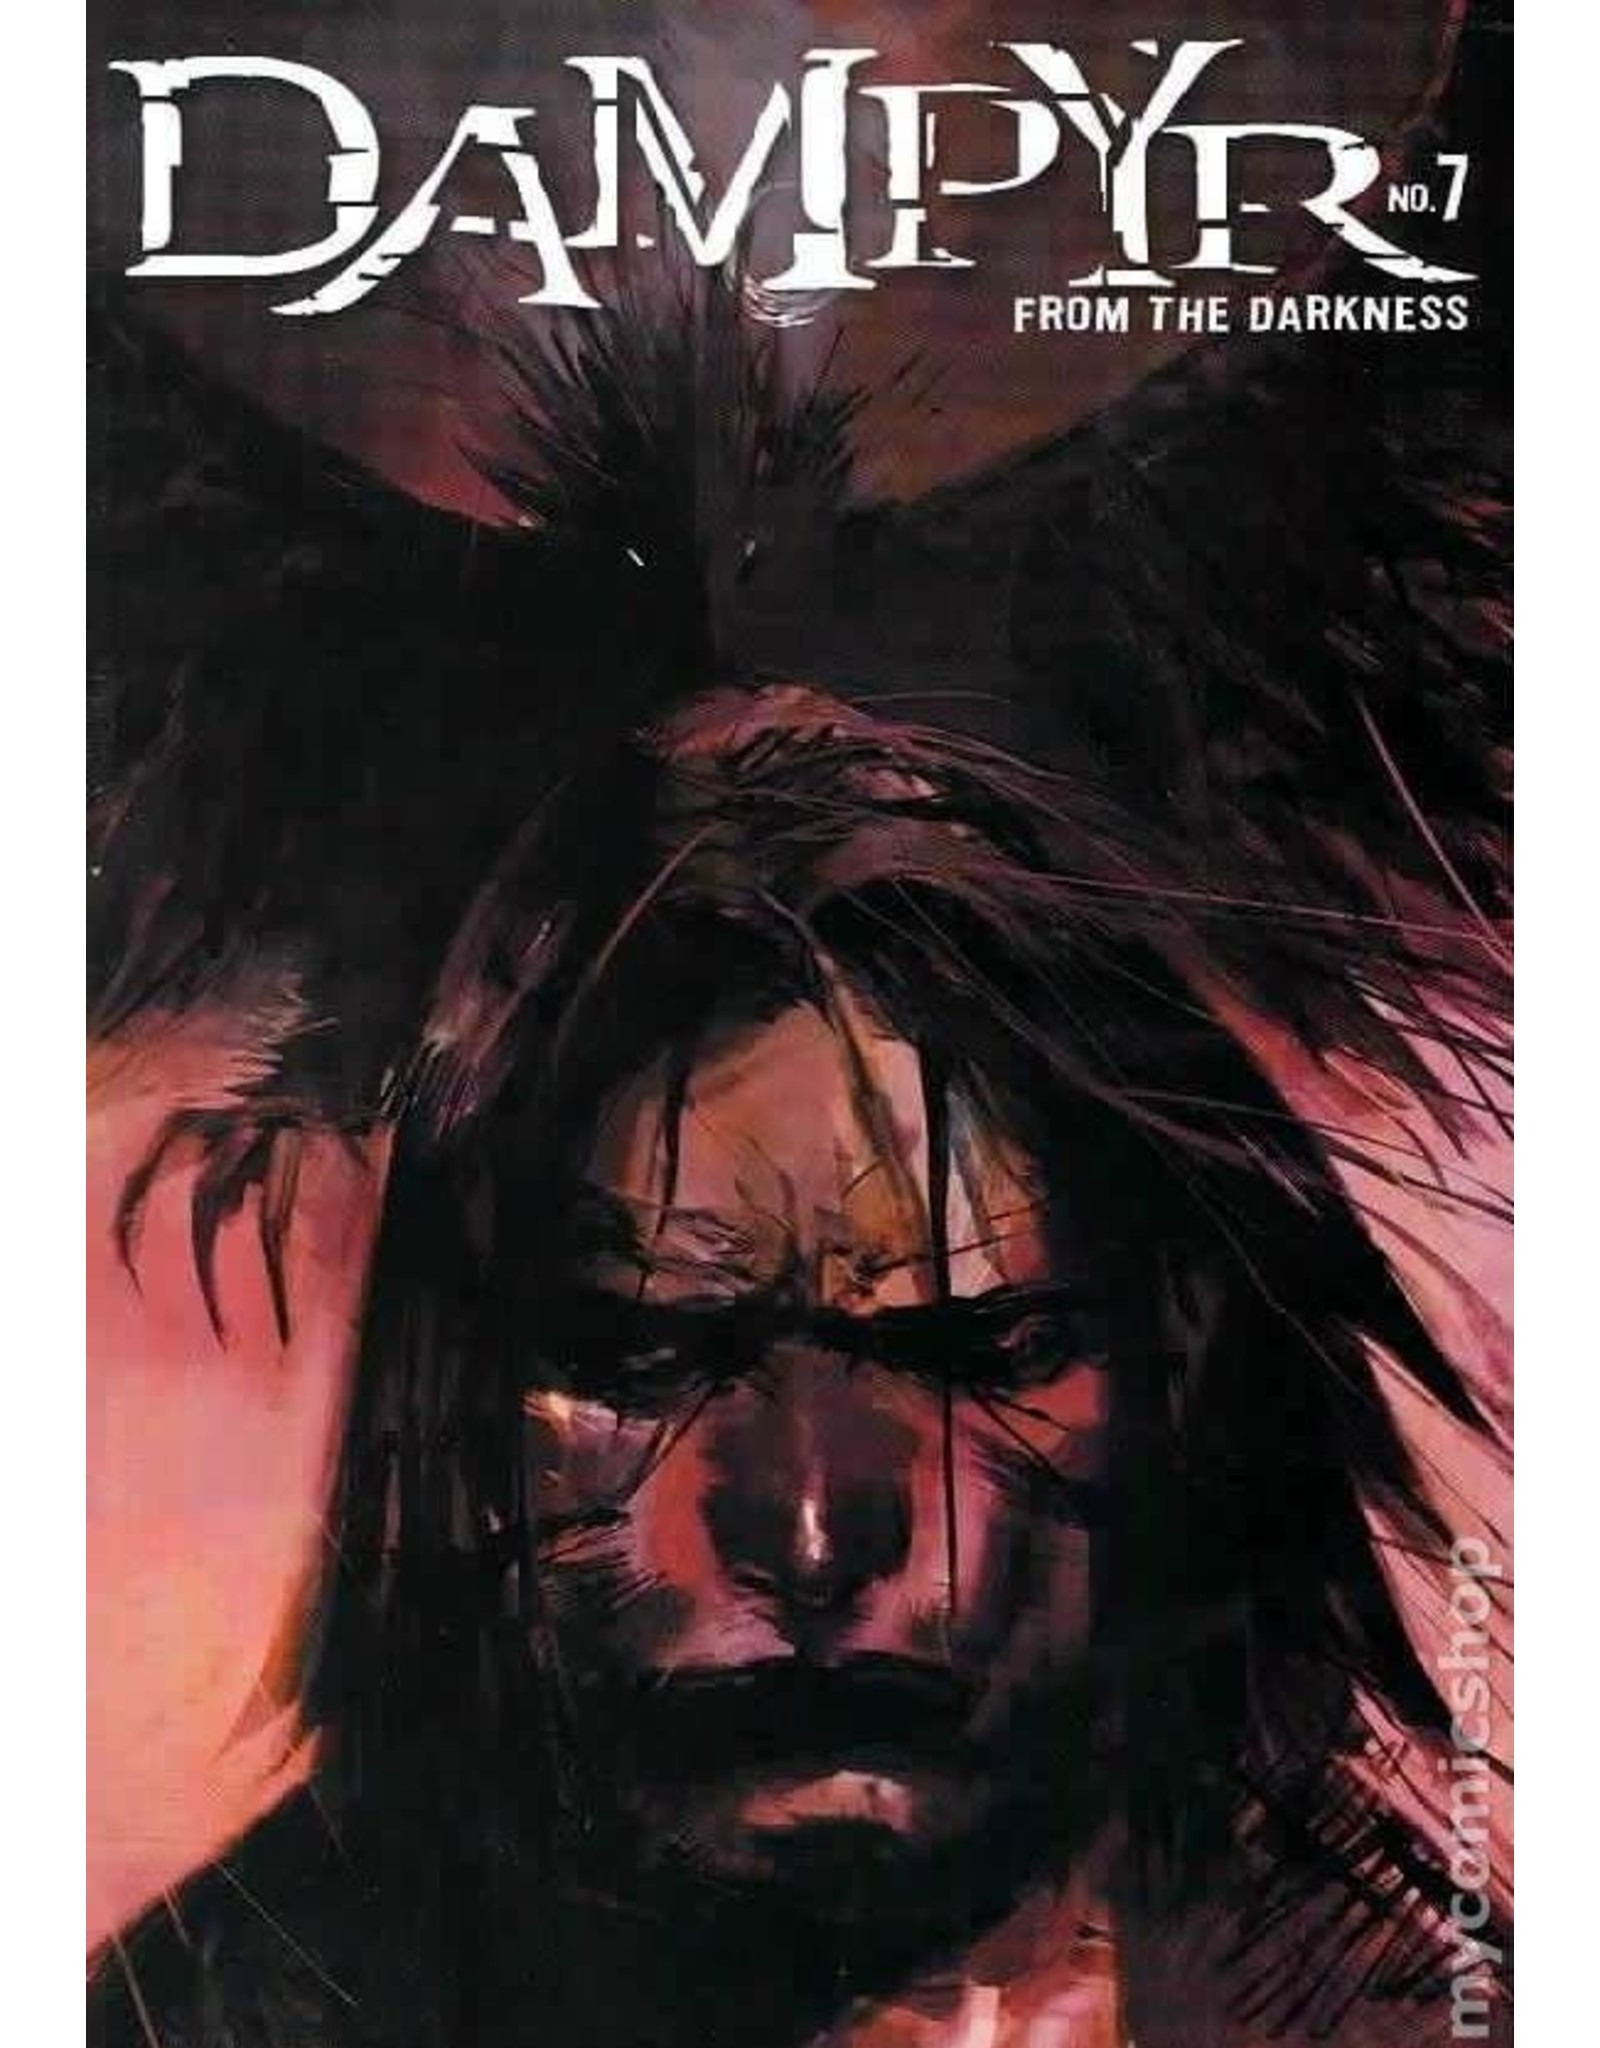 IDW PUBLISHING DAMPYR #7 FROM THE DARKNESS